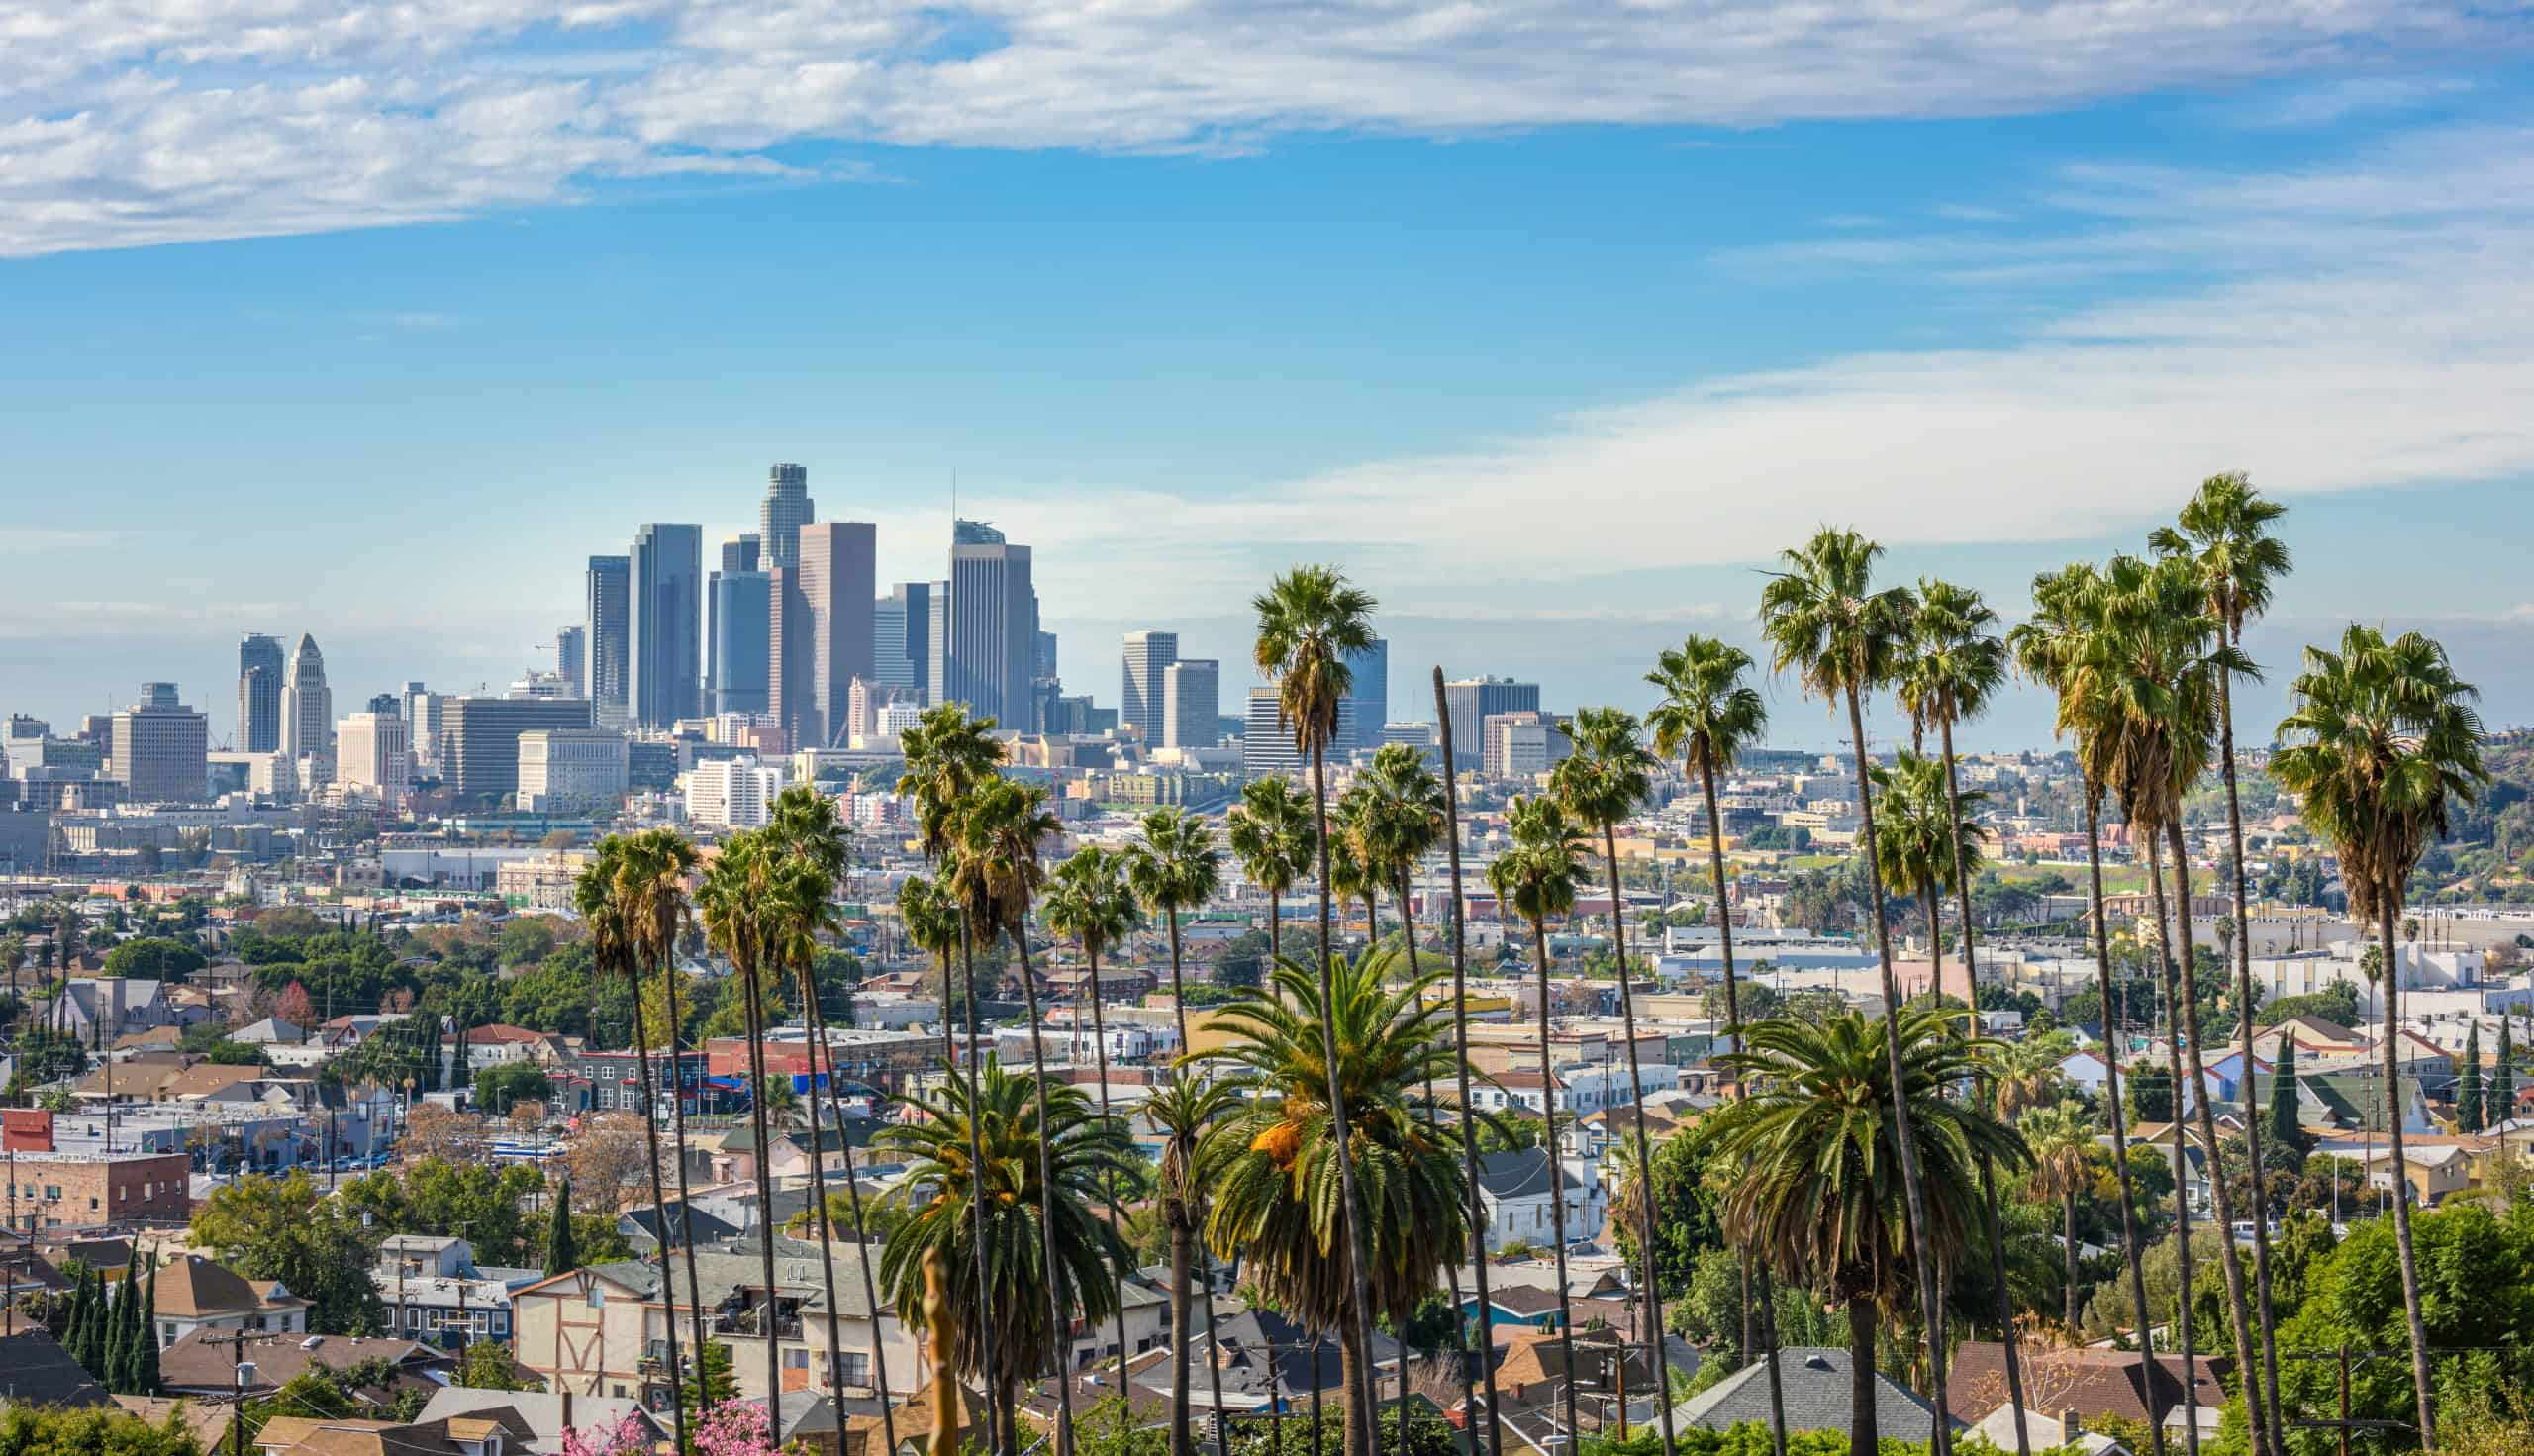 Los Angeles Property Tax Leads Annual $1.76 Trillion